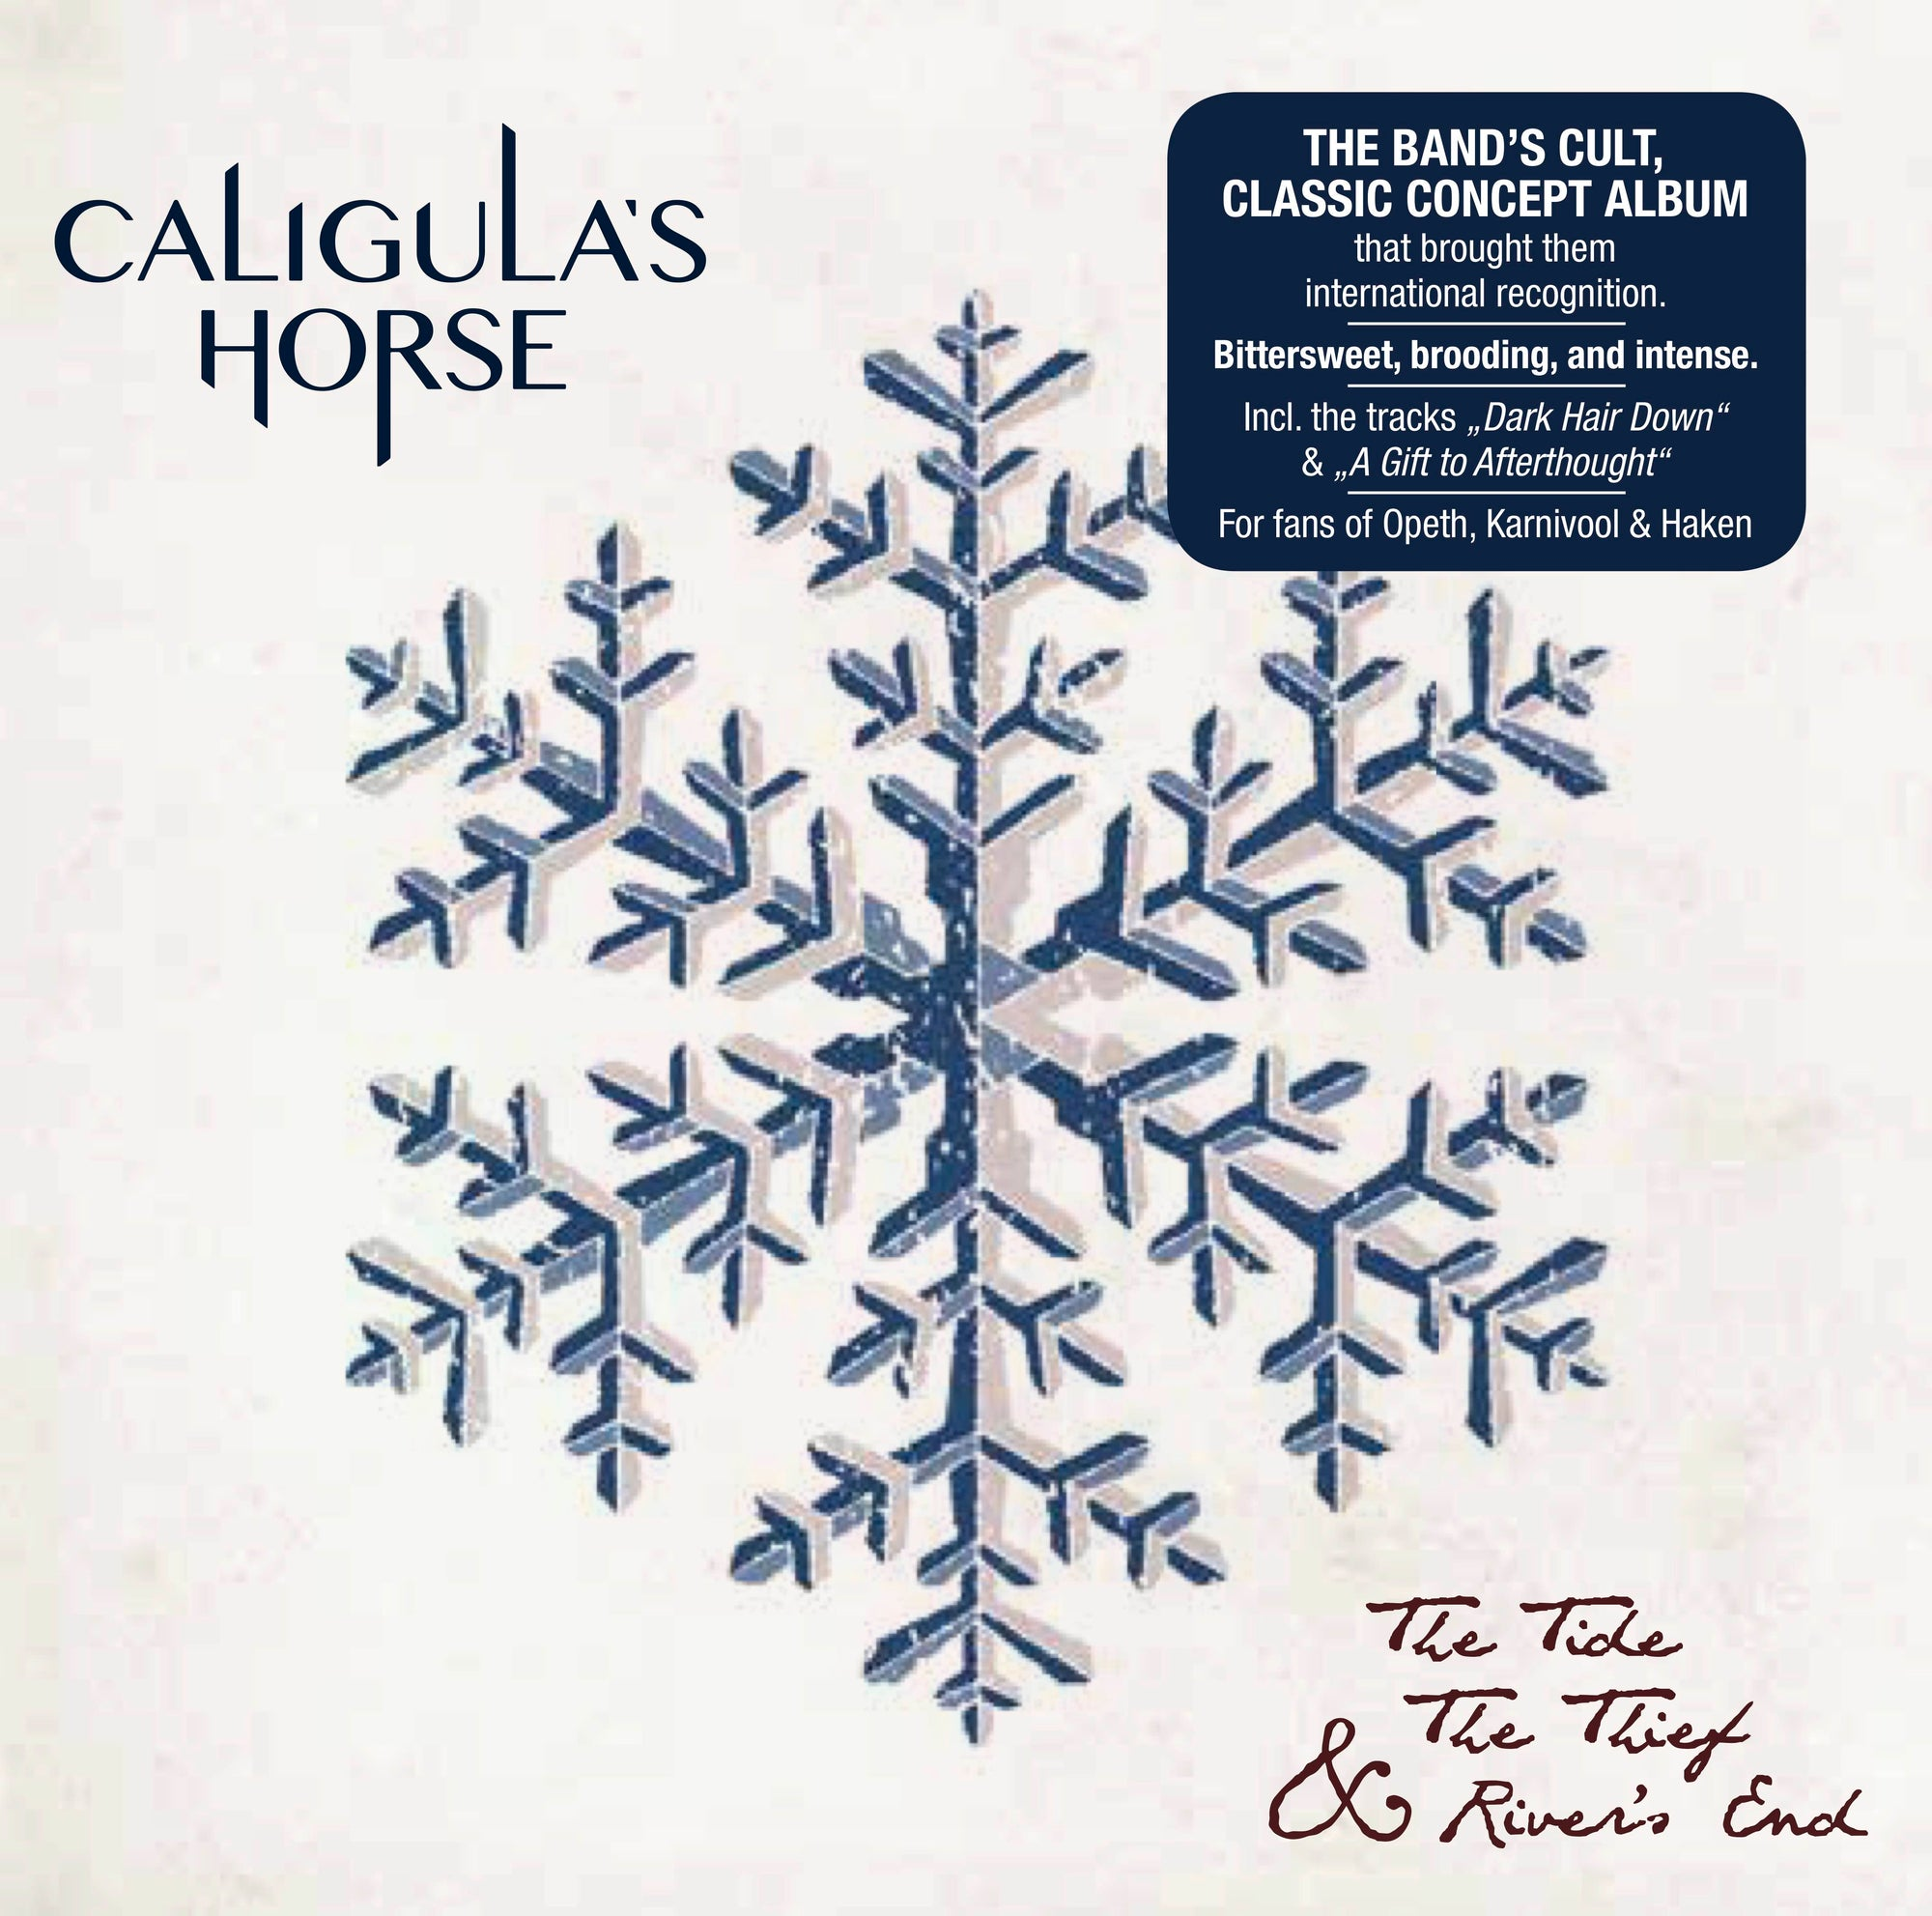 CALIGULA'S HORSE // THE TIDE, THE THIEF & RIVER'S END - CD (RE-ISSUE 2017) - Wild Thing Records